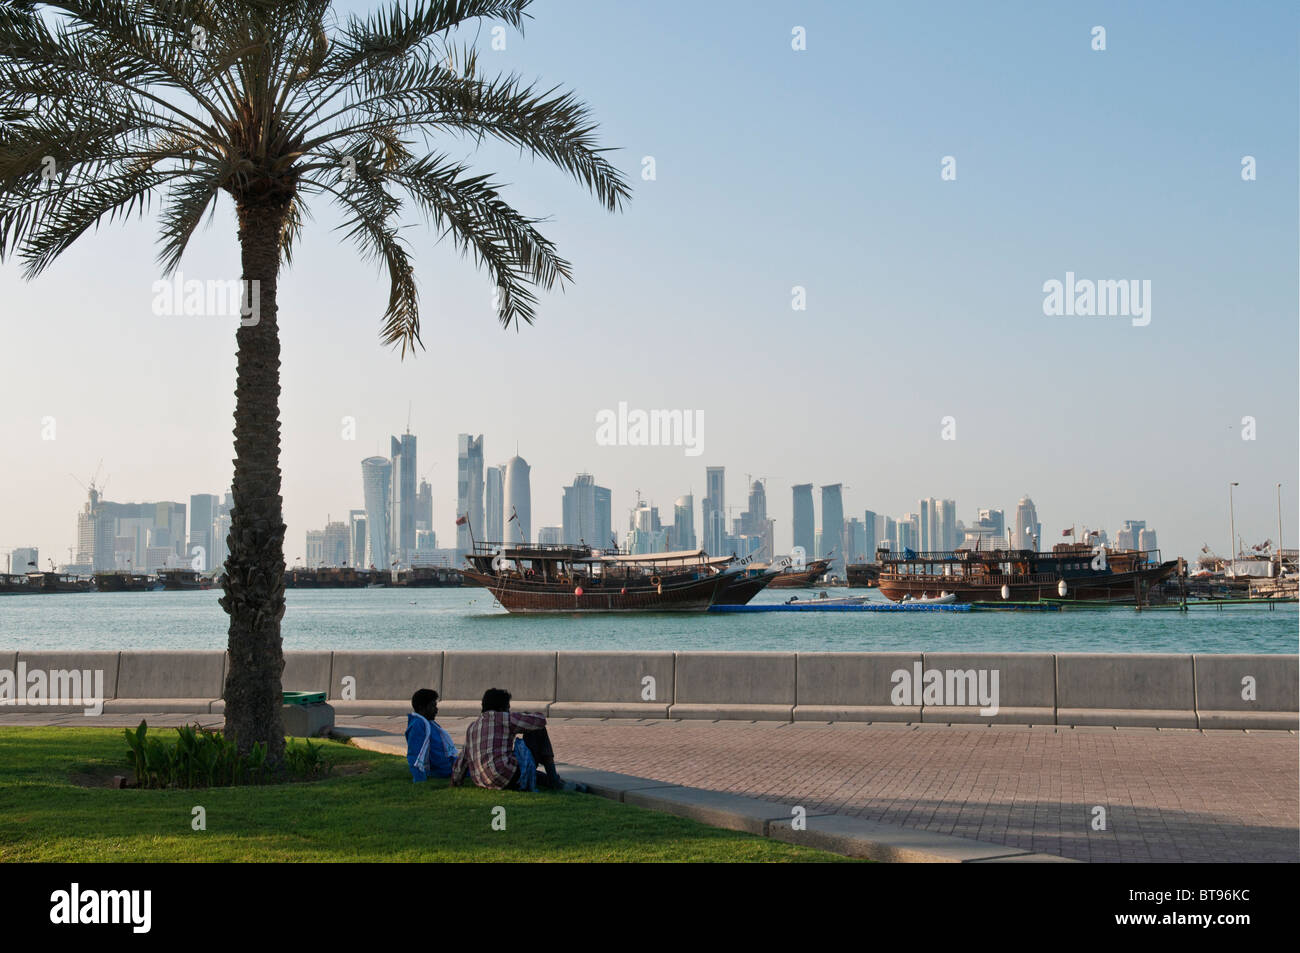 view of doha qatar with boats and skyline - Stock Image